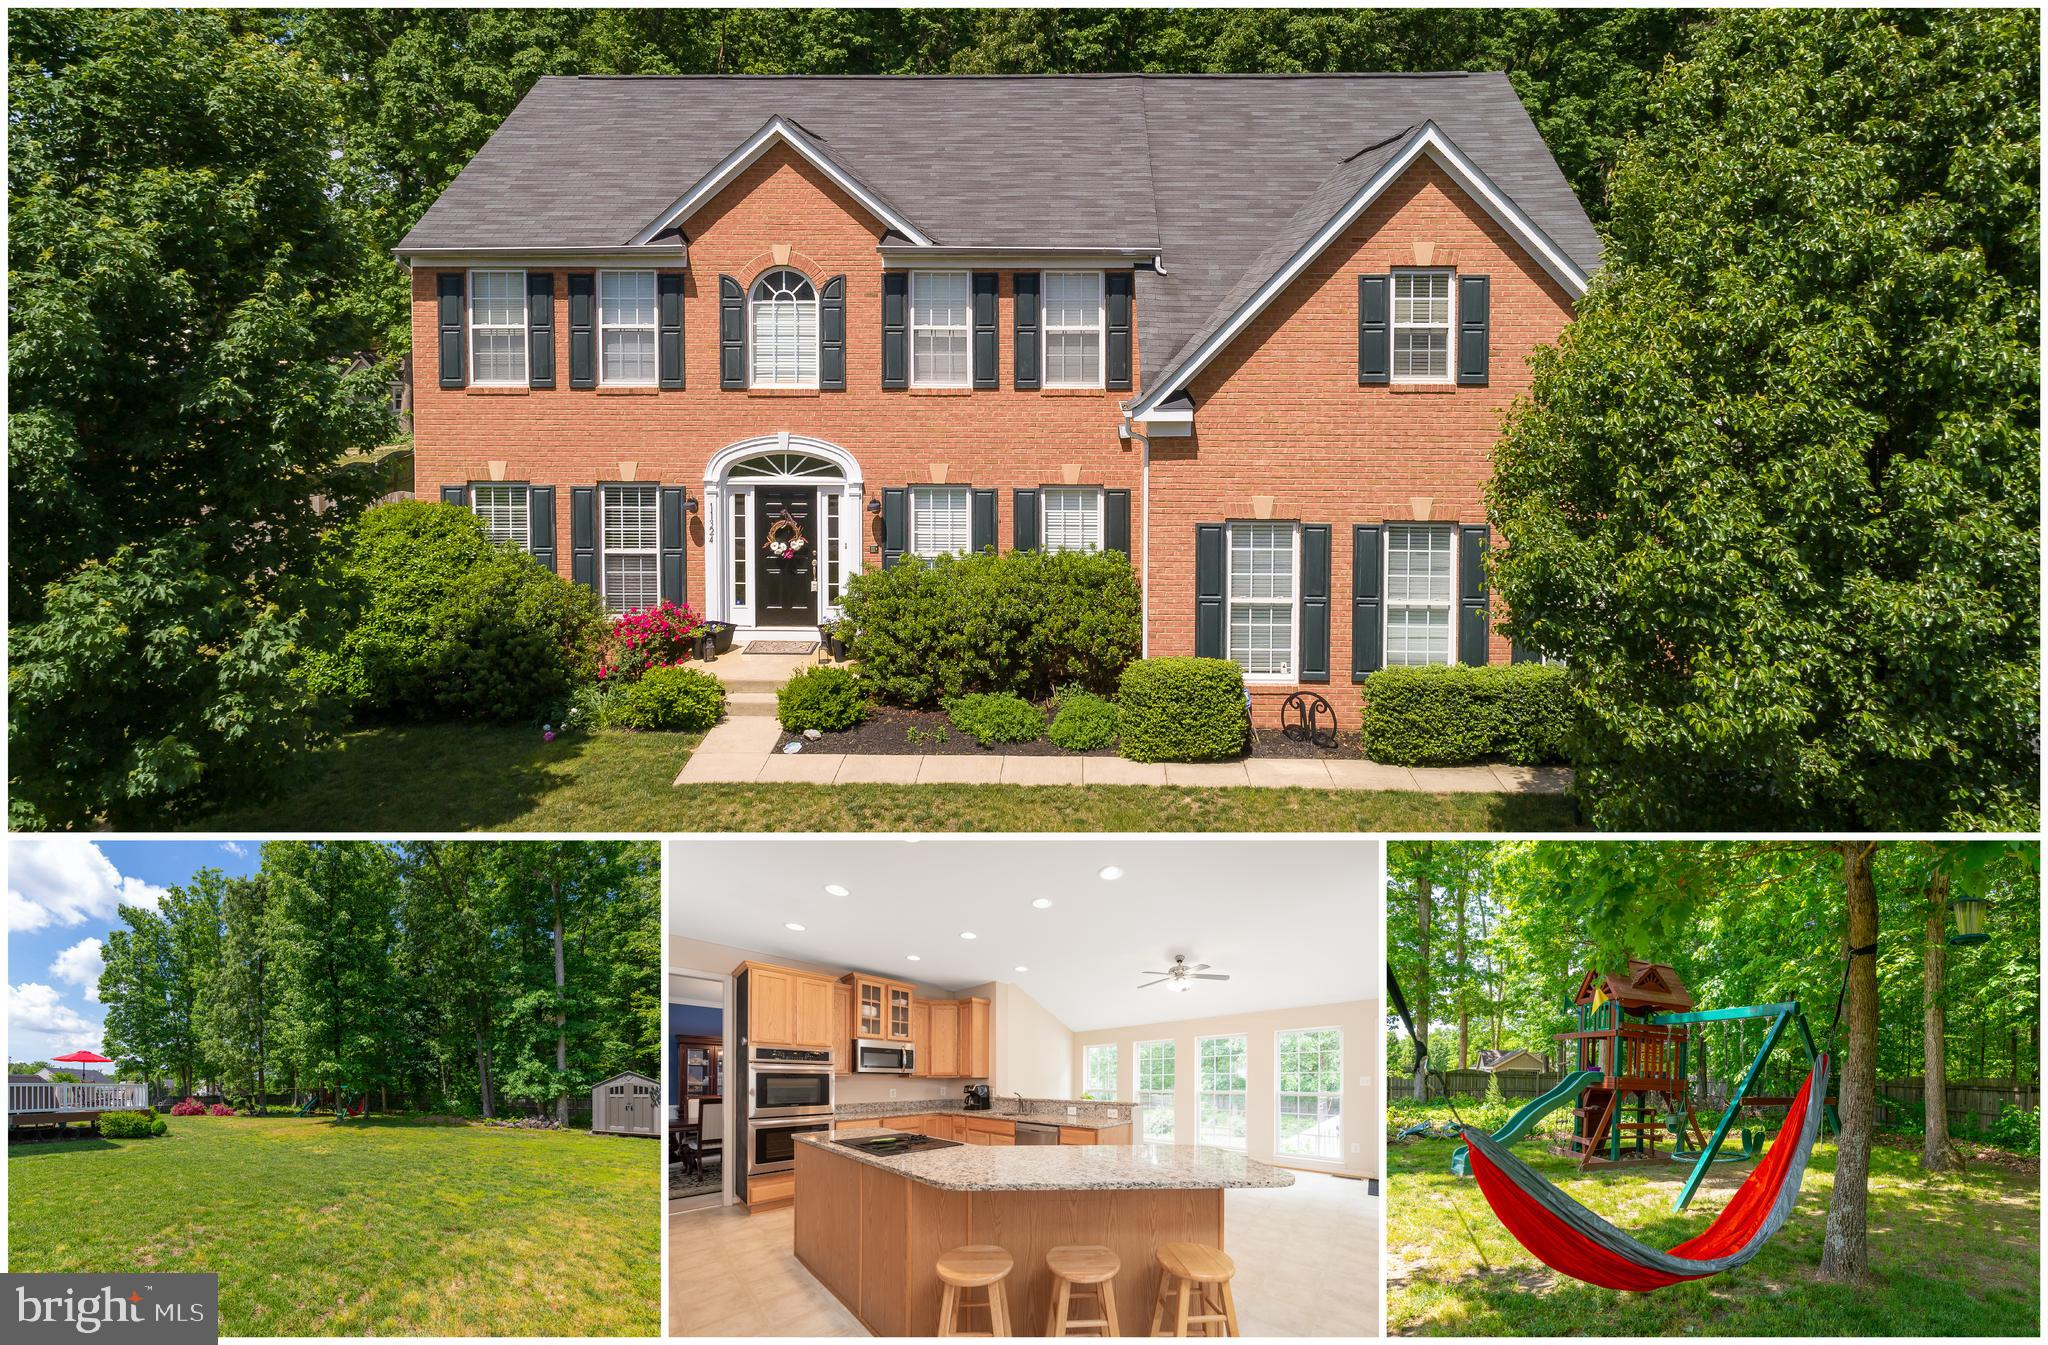 11324 LONG BRANCH WAY, FREDERICKSBURG, VA 22408